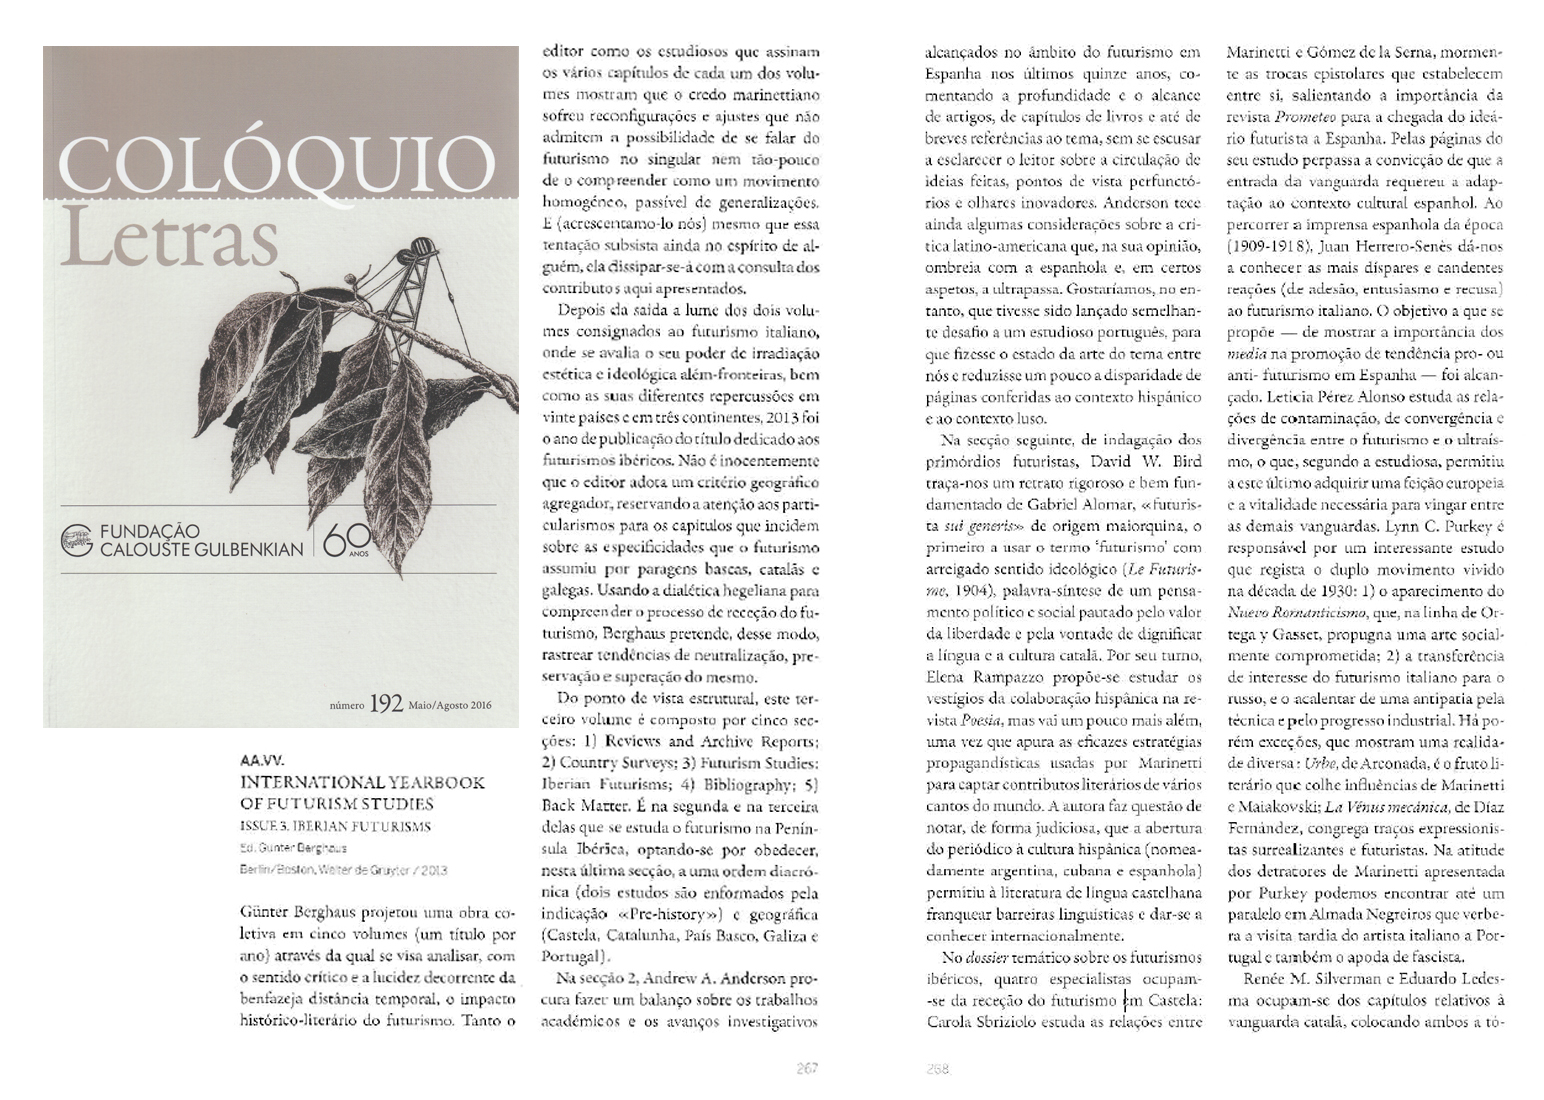 2015 Futurism_Yearbook Review Coloquio Letras 1.jpg